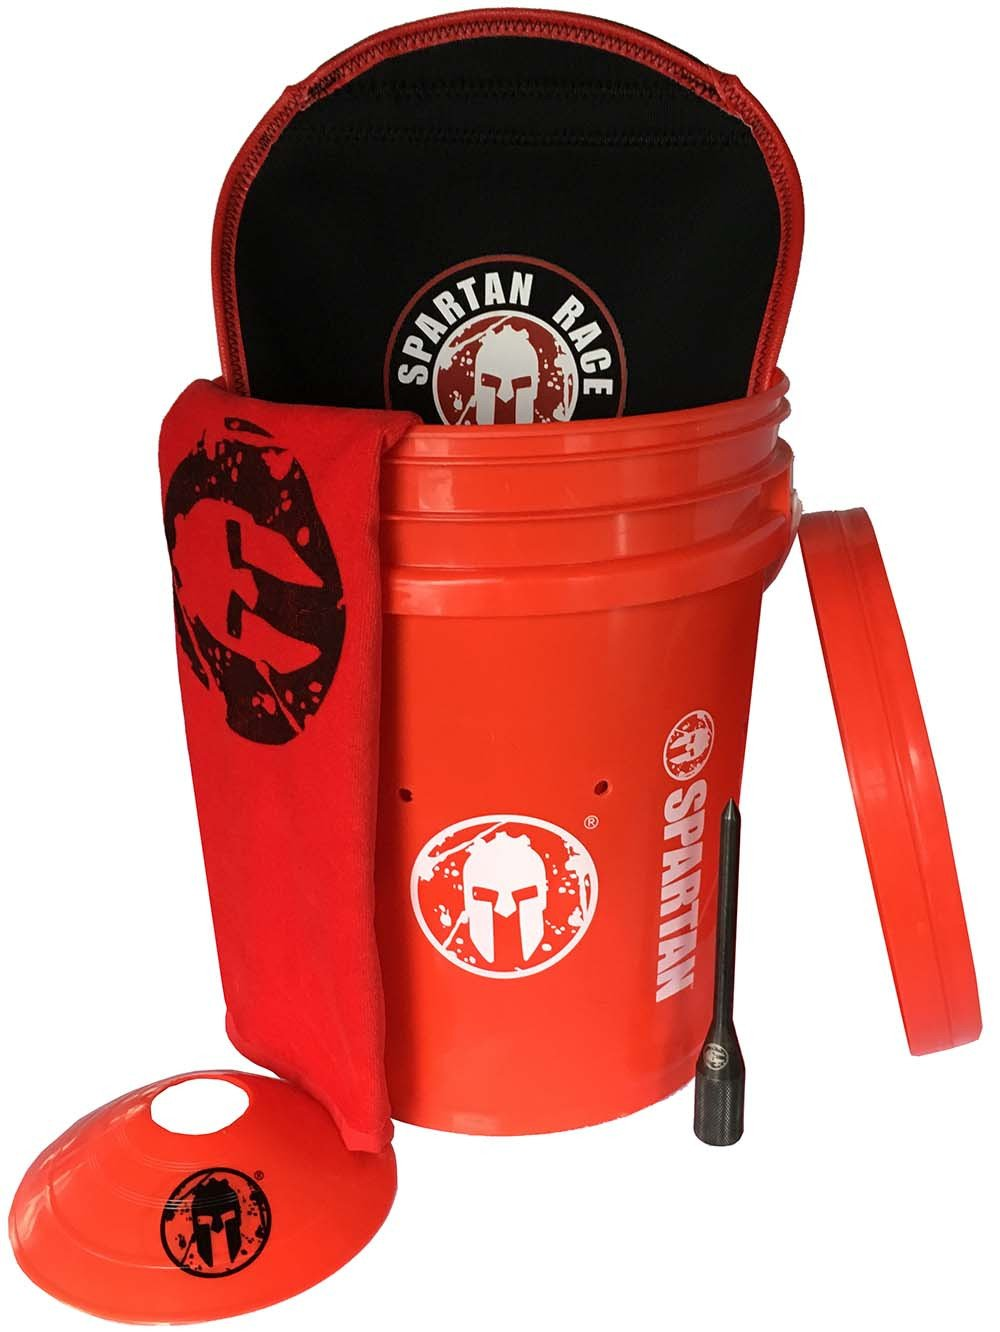 SPARTAN In A Bucket Training Kit - Super Edition